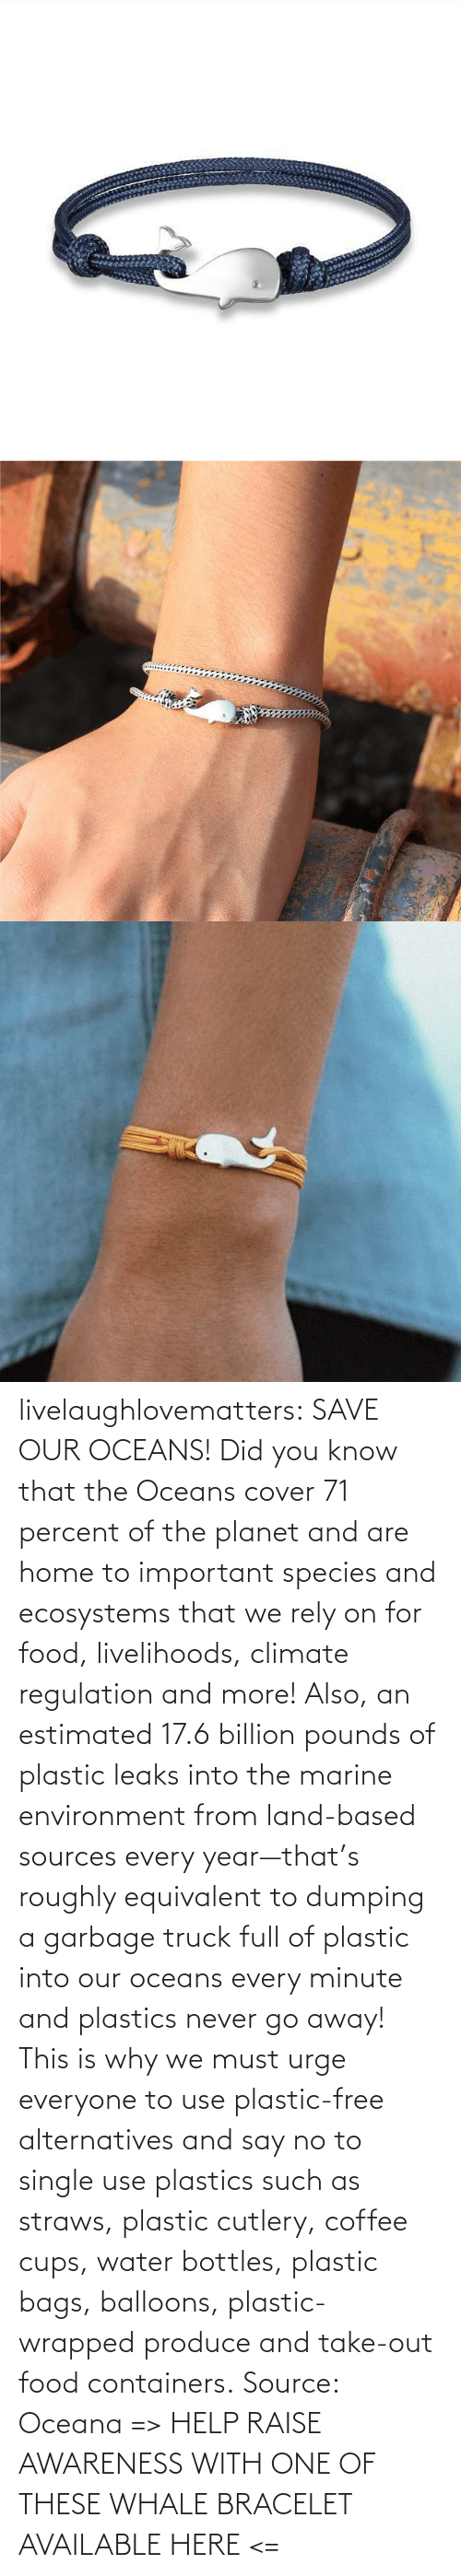 Free: livelaughlovematters: SAVE OUR OCEANS!  Did you know that the Oceans cover 71 percent of the planet and are home to important species and ecosystems that we rely on for food, livelihoods, climate regulation and more! Also, an estimated 17.6 billion pounds of plastic leaks into the marine environment from land-based sources every year—that's roughly equivalent to dumping a garbage truck full of plastic into our oceans every minute and plastics never go away! This is why we must urge everyone to use plastic-free alternatives and say no to single use plastics such as straws, plastic cutlery, coffee cups, water bottles, plastic bags, balloons, plastic-wrapped produce and take-out food containers. Source: Oceana => HELP RAISE AWARENESS WITH ONE OF THESE WHALE BRACELET AVAILABLE HERE <=